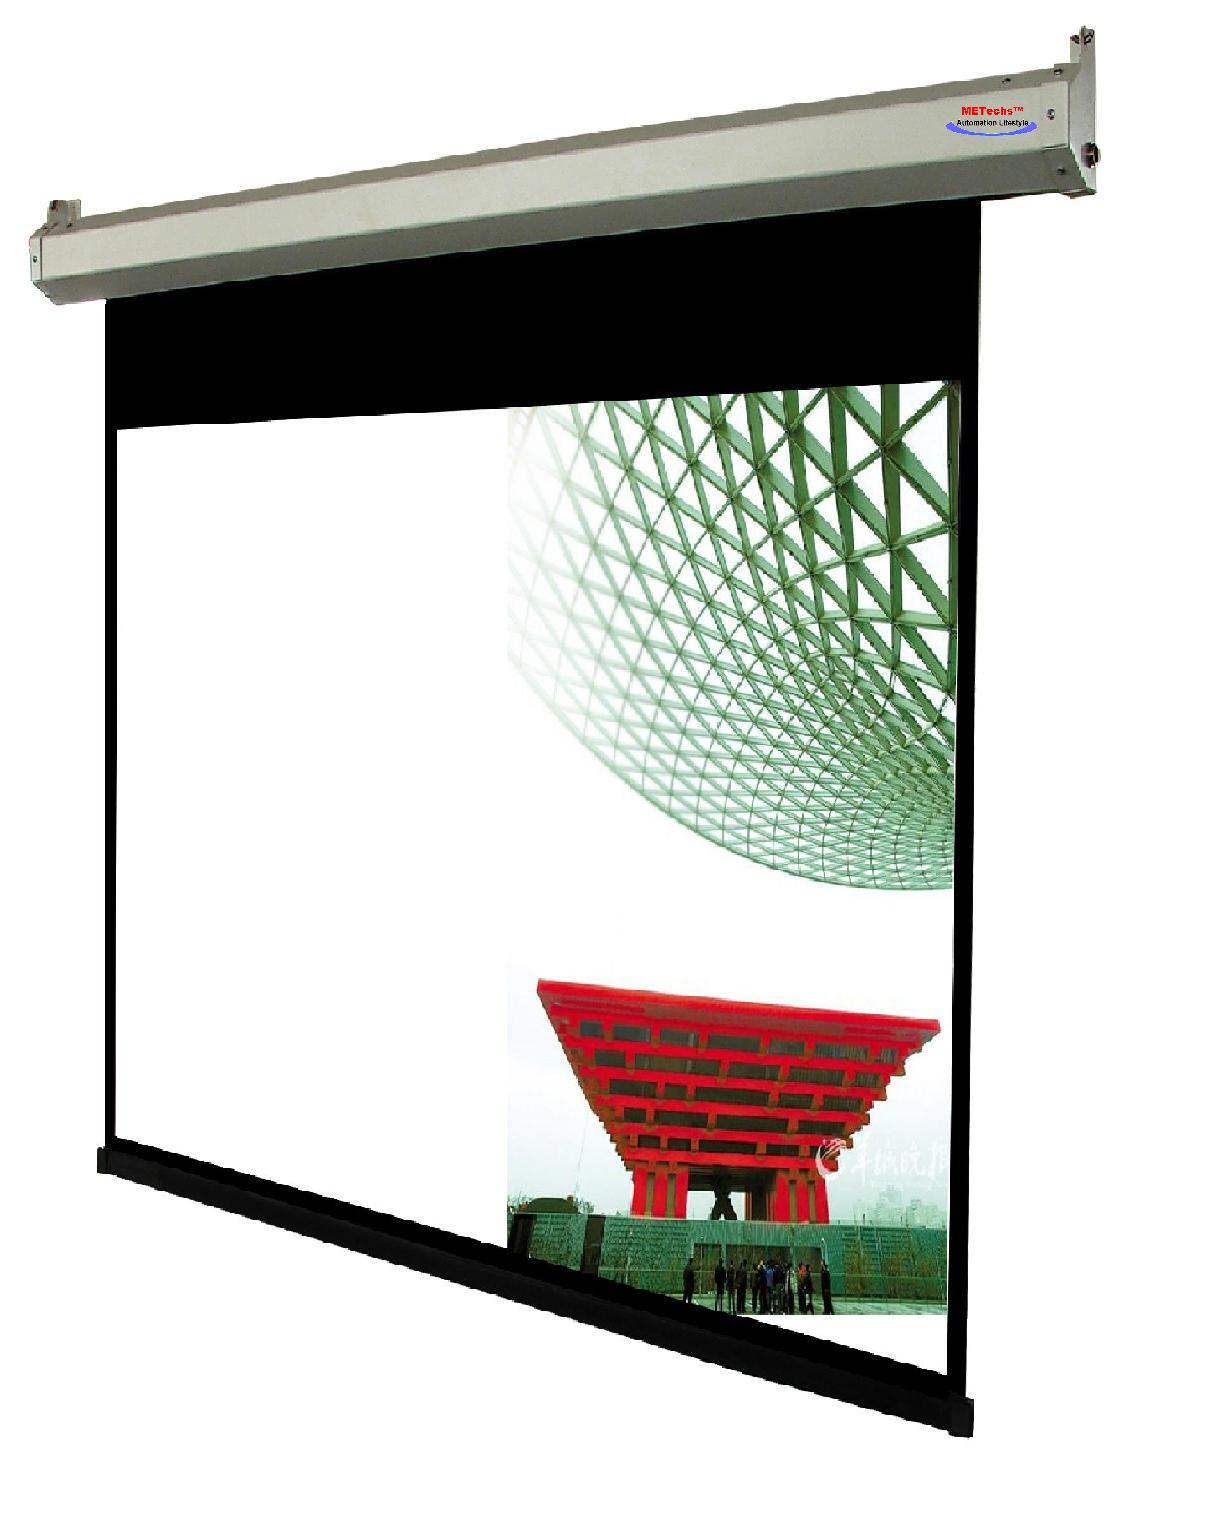 112 1 1 Motorized Electric Projector Screen Me11e 112w